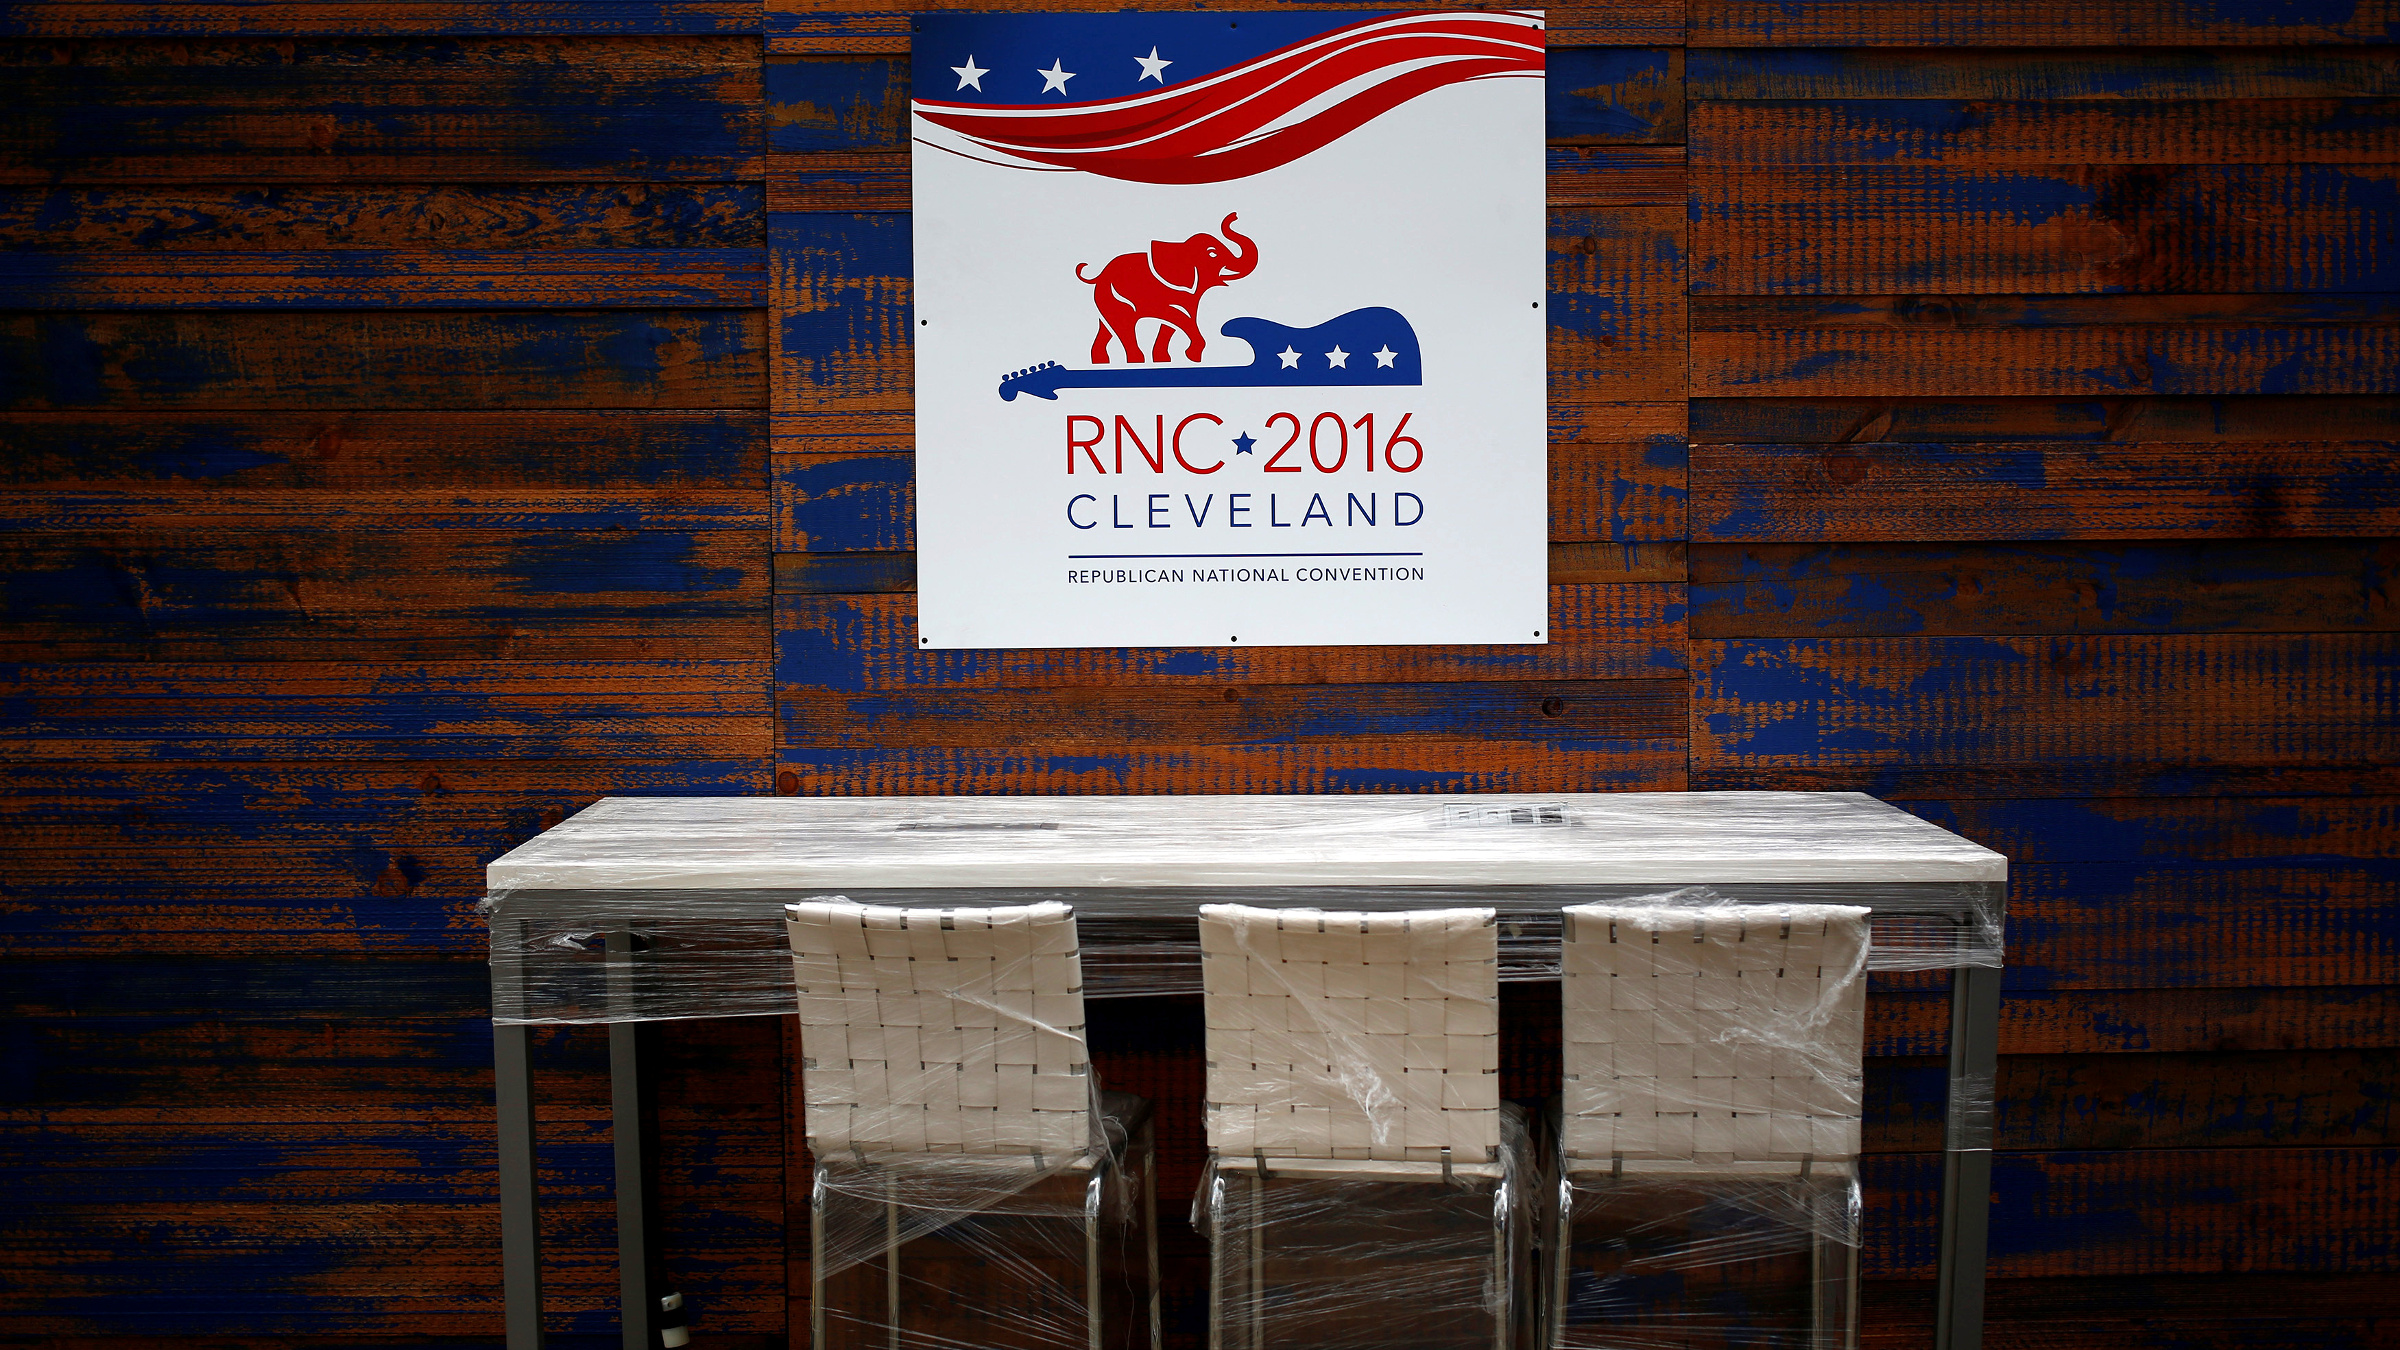 A bar is seen outside the Quicken Loans Arena in advance of the Republican National Convention in Cleveland, Ohio July 15, 2016.